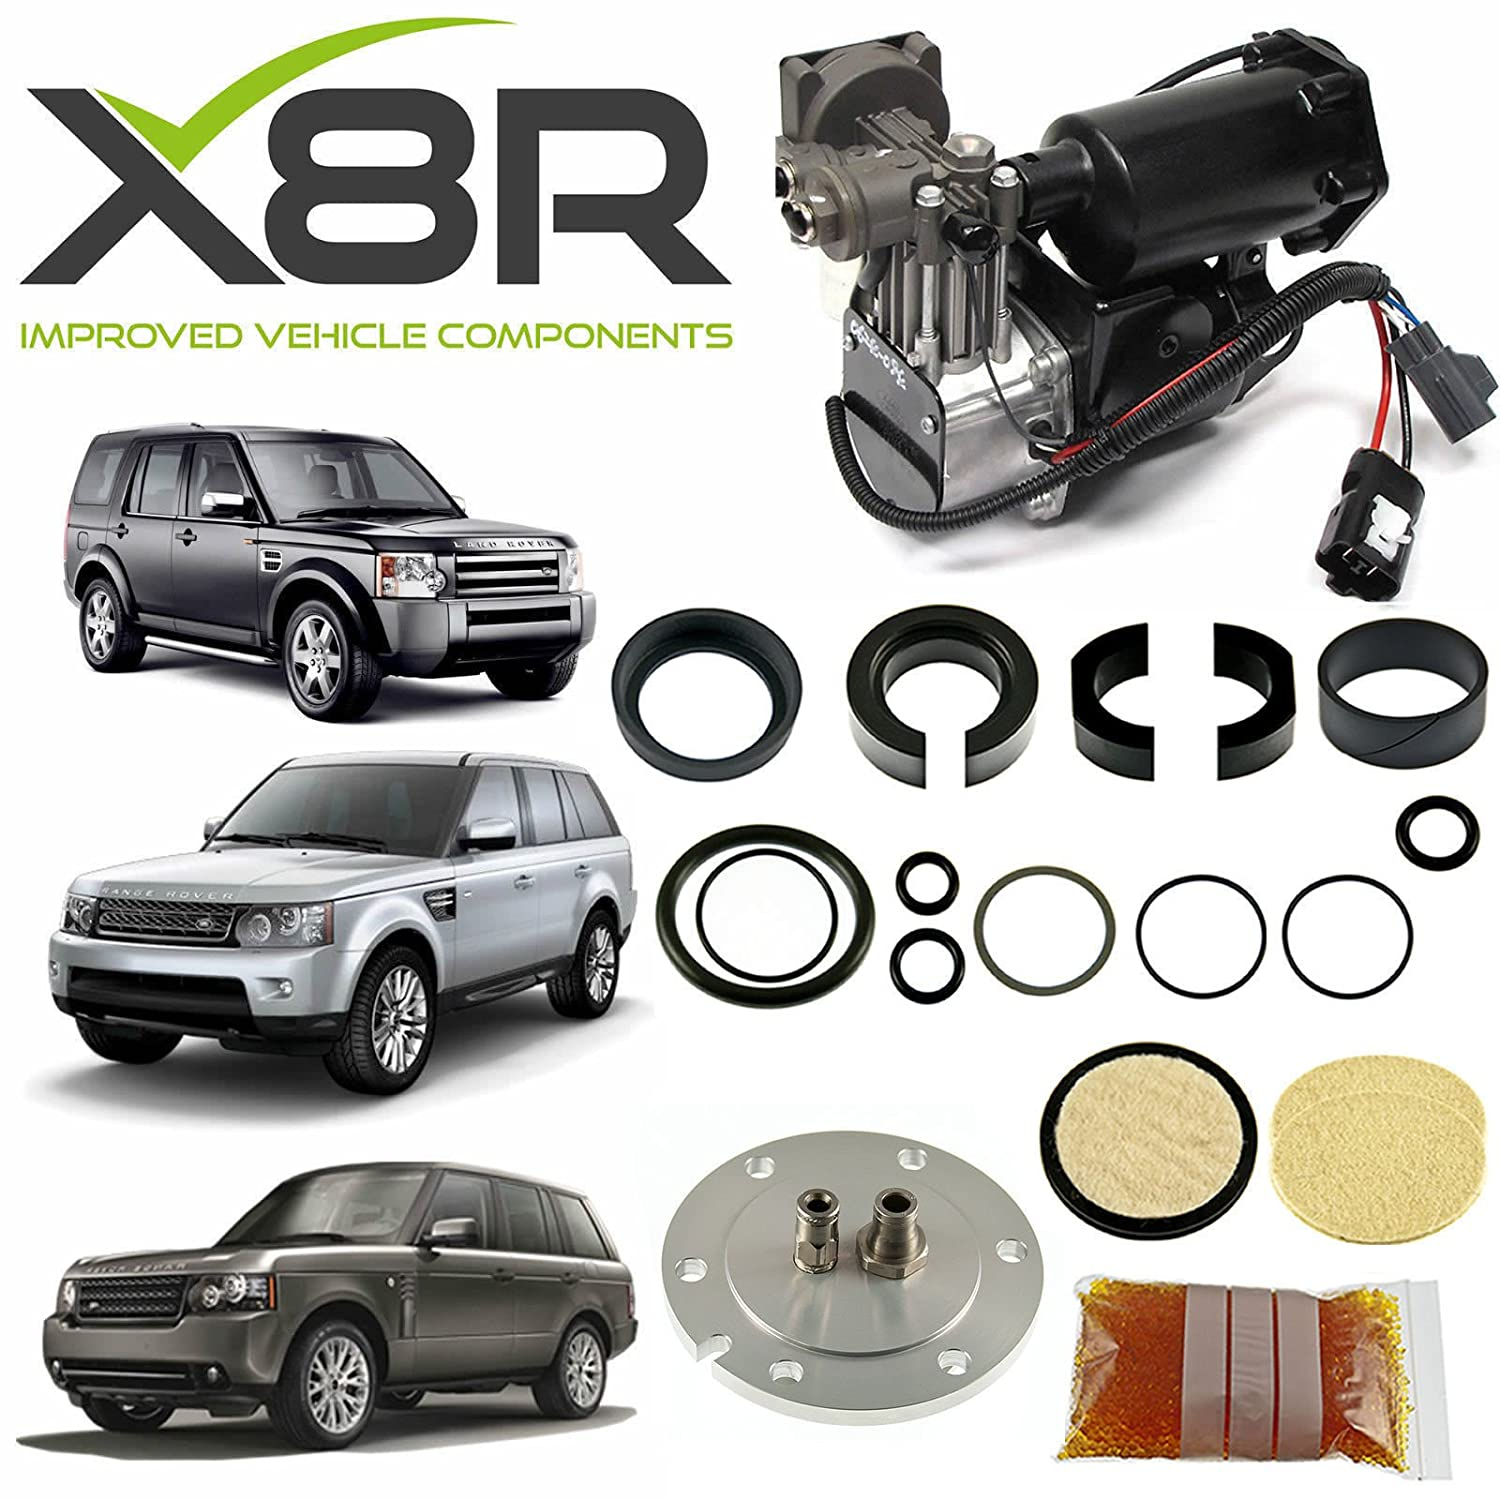 HITACHI AIR COMPRESSOR & FILTER DRYER REPAIR KIT FOR LAND ROVER LR3 DISCOVERY 3 X 8R44